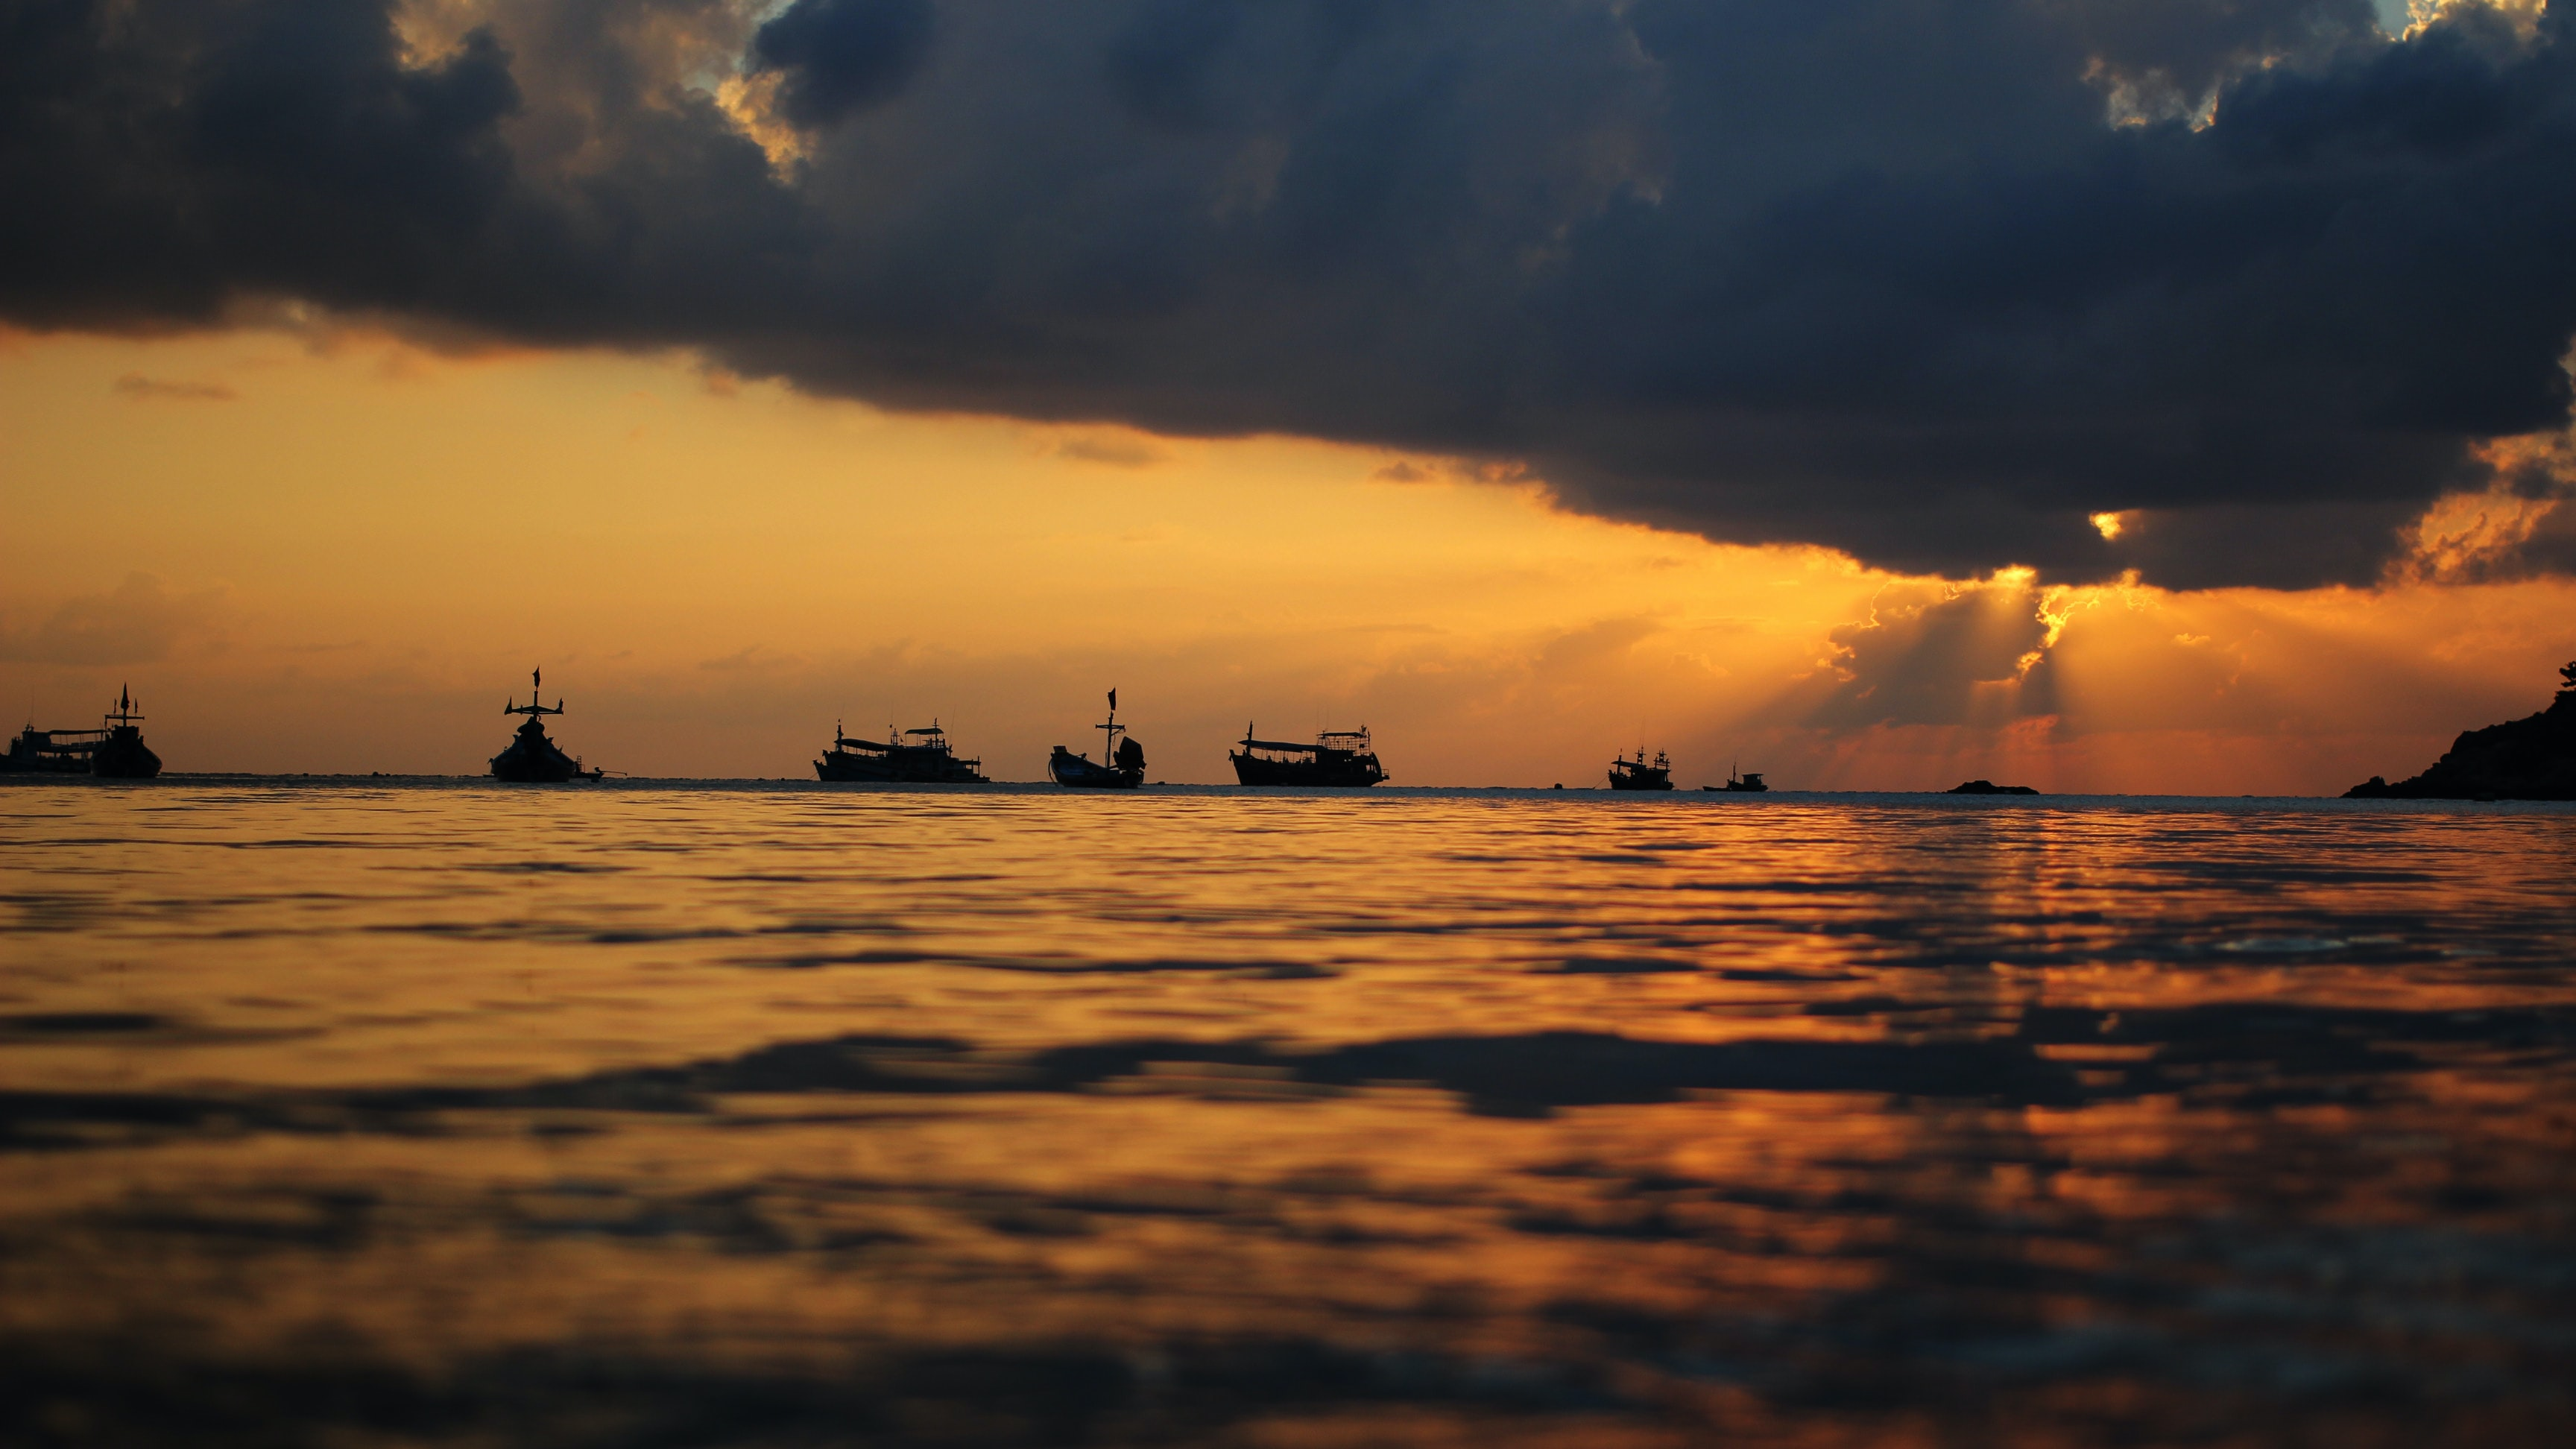 landscape photography of group of ships under golden hour